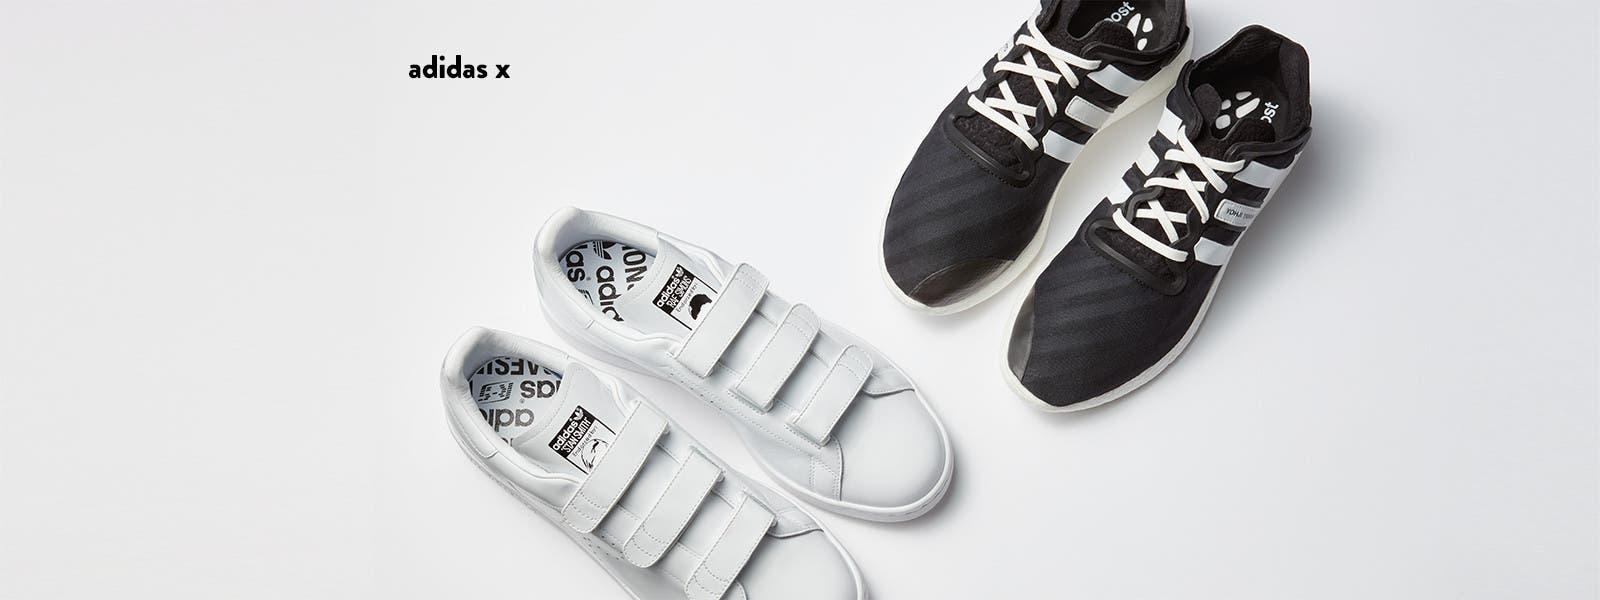 Adidas collaborates with Raf Simons and Yohji Yamamoto.